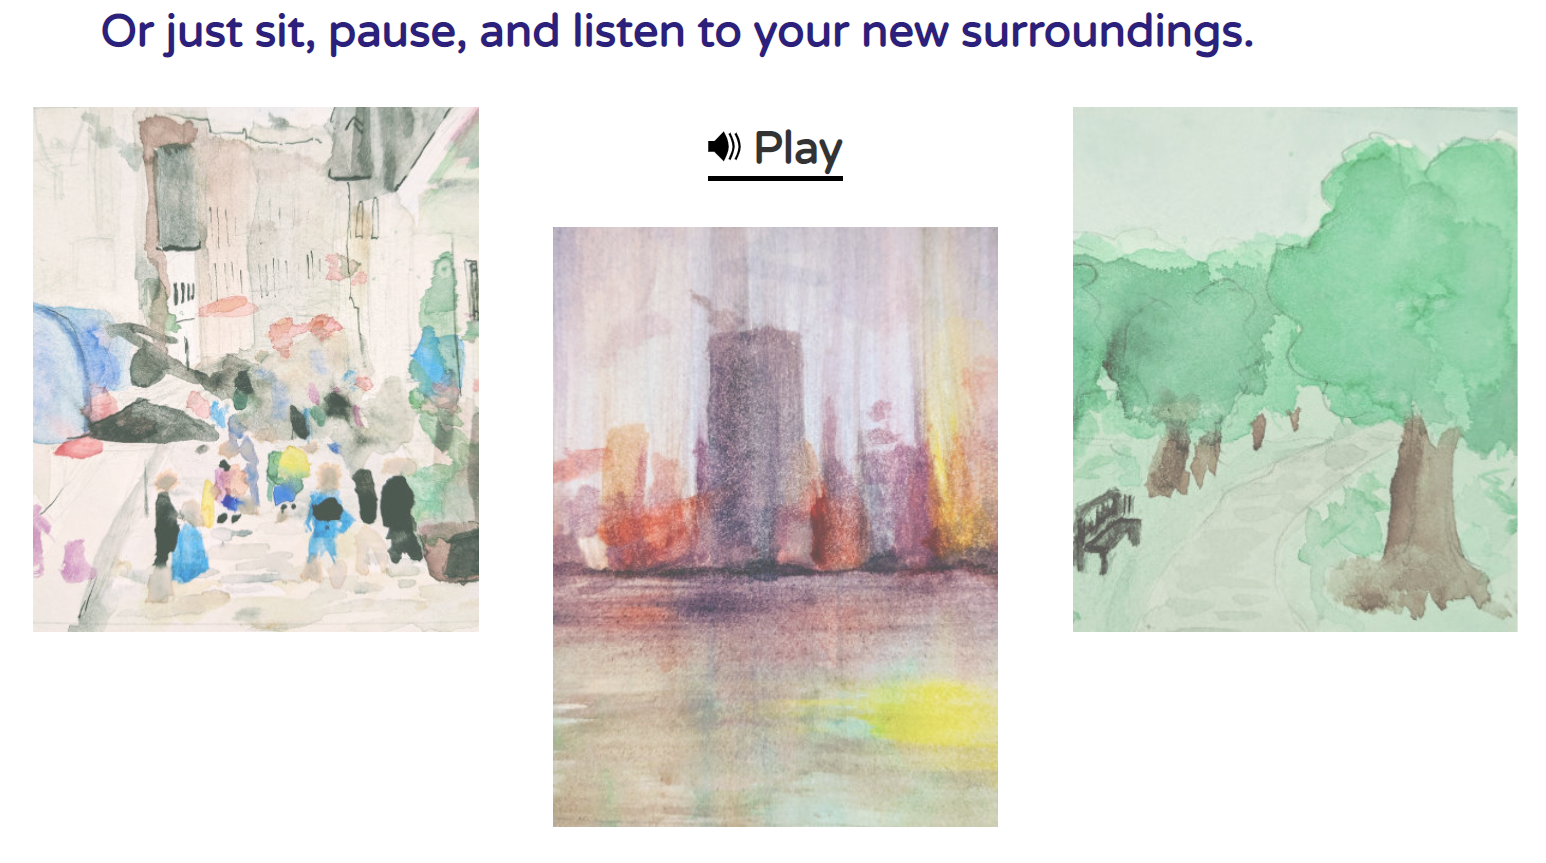 The text 'or sit, pause, and listen to your surroundings' and 3 watercolor paintings: one of a montreal city street, one of a city skyline in the rain, and one of a park in the summer.